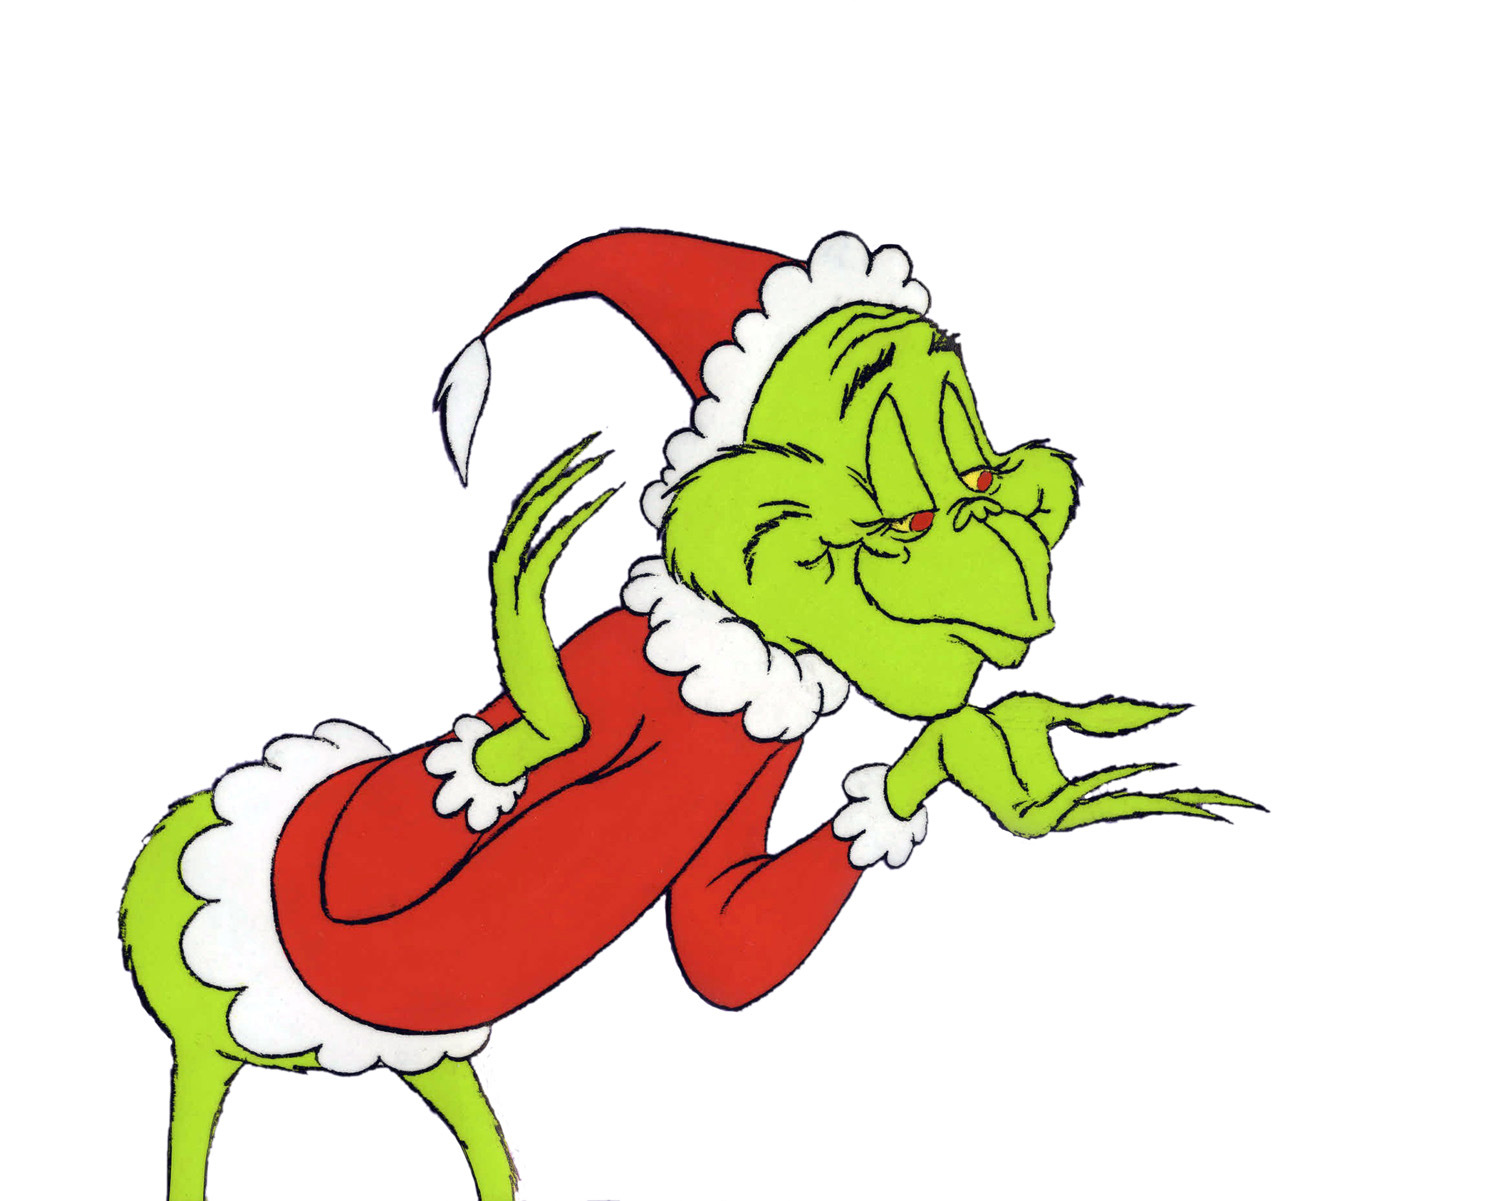 Pix For u0026gt; The Grinch Who Stole Christmas Book Characters